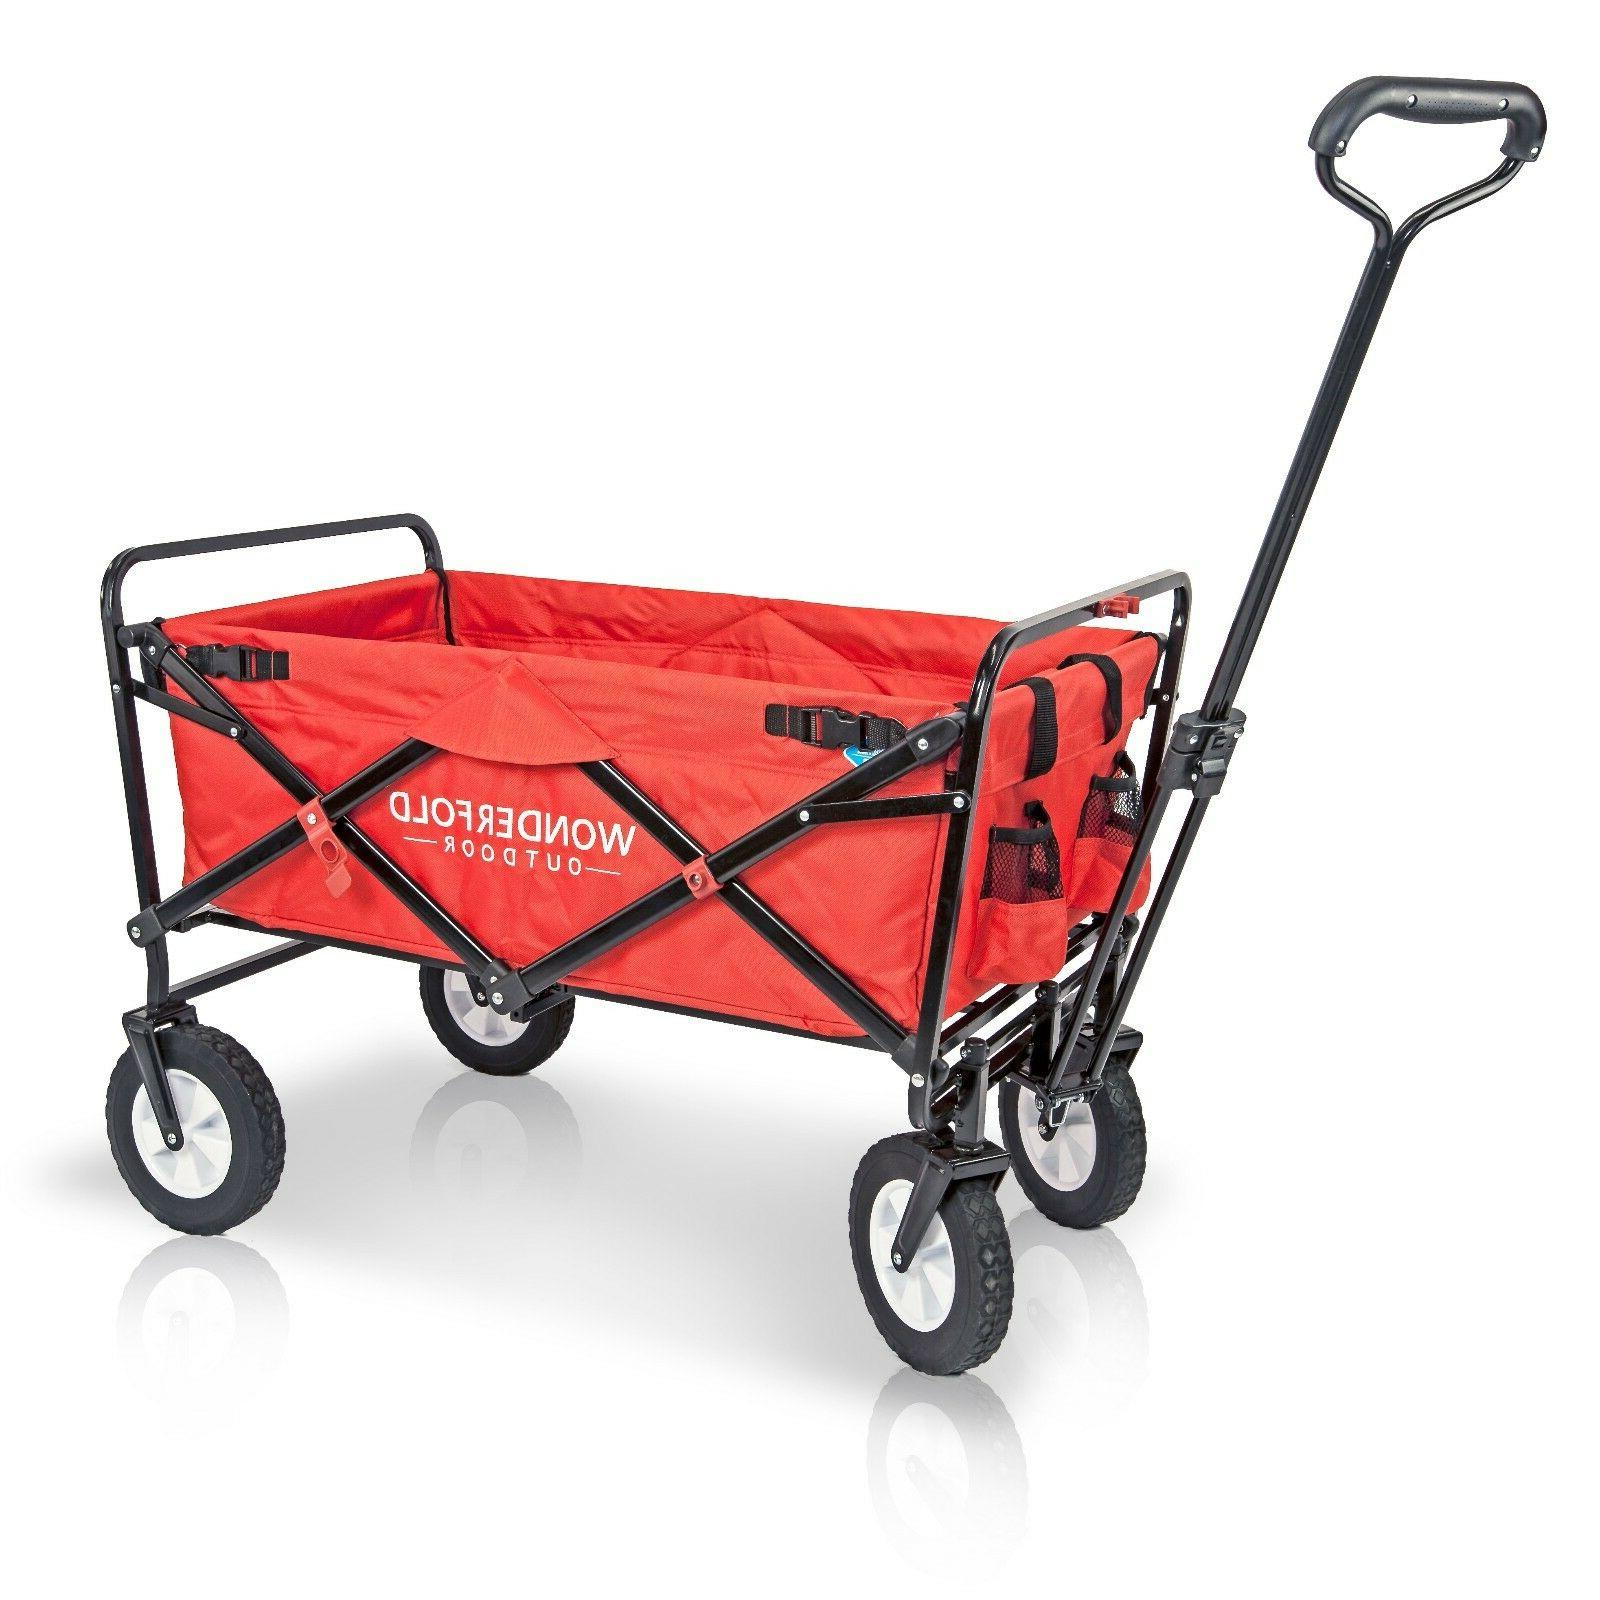 Folding Collapsible Utility Cart